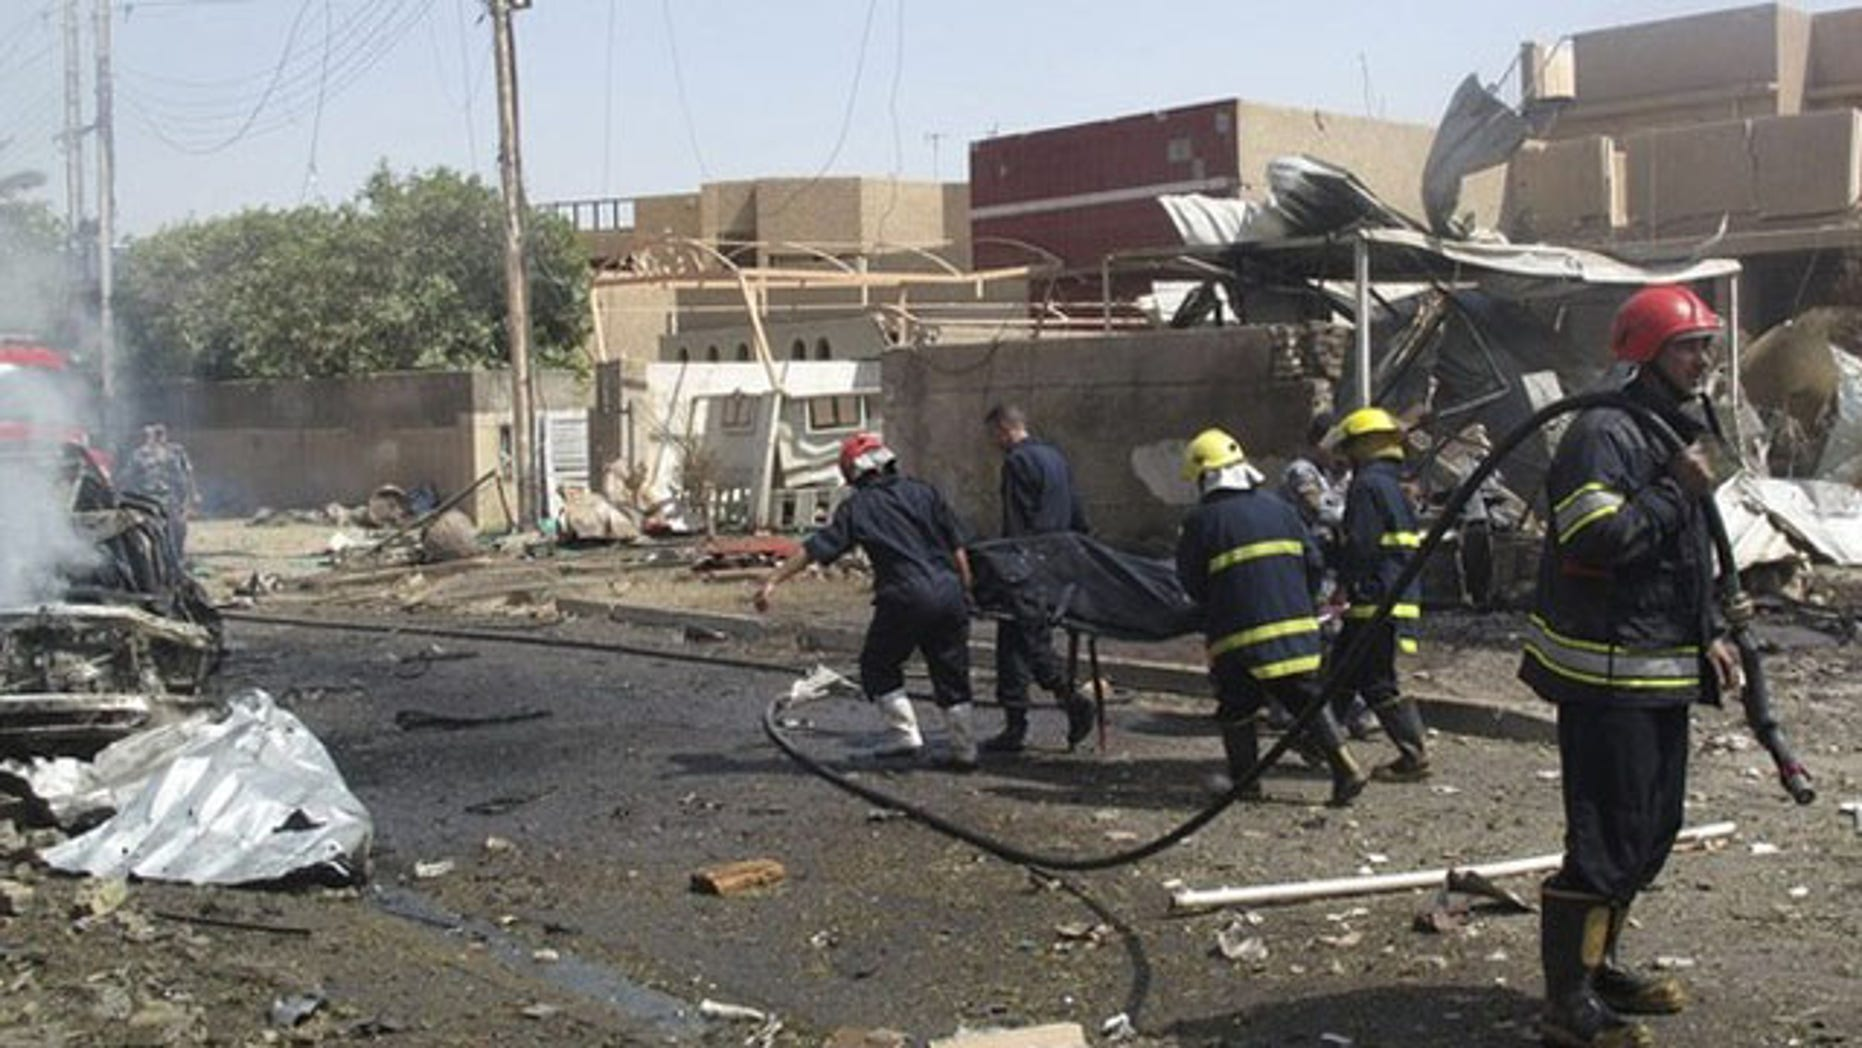 July 26: Rescue workers carry the body of a victim who was killed in a bomb attack in Baghdad. A homicide bomber killed at least four people on Monday in the attack that appeared to target the office of Dubai-based Al-Arabiya television in Baghdad, security officials said (Reuters).